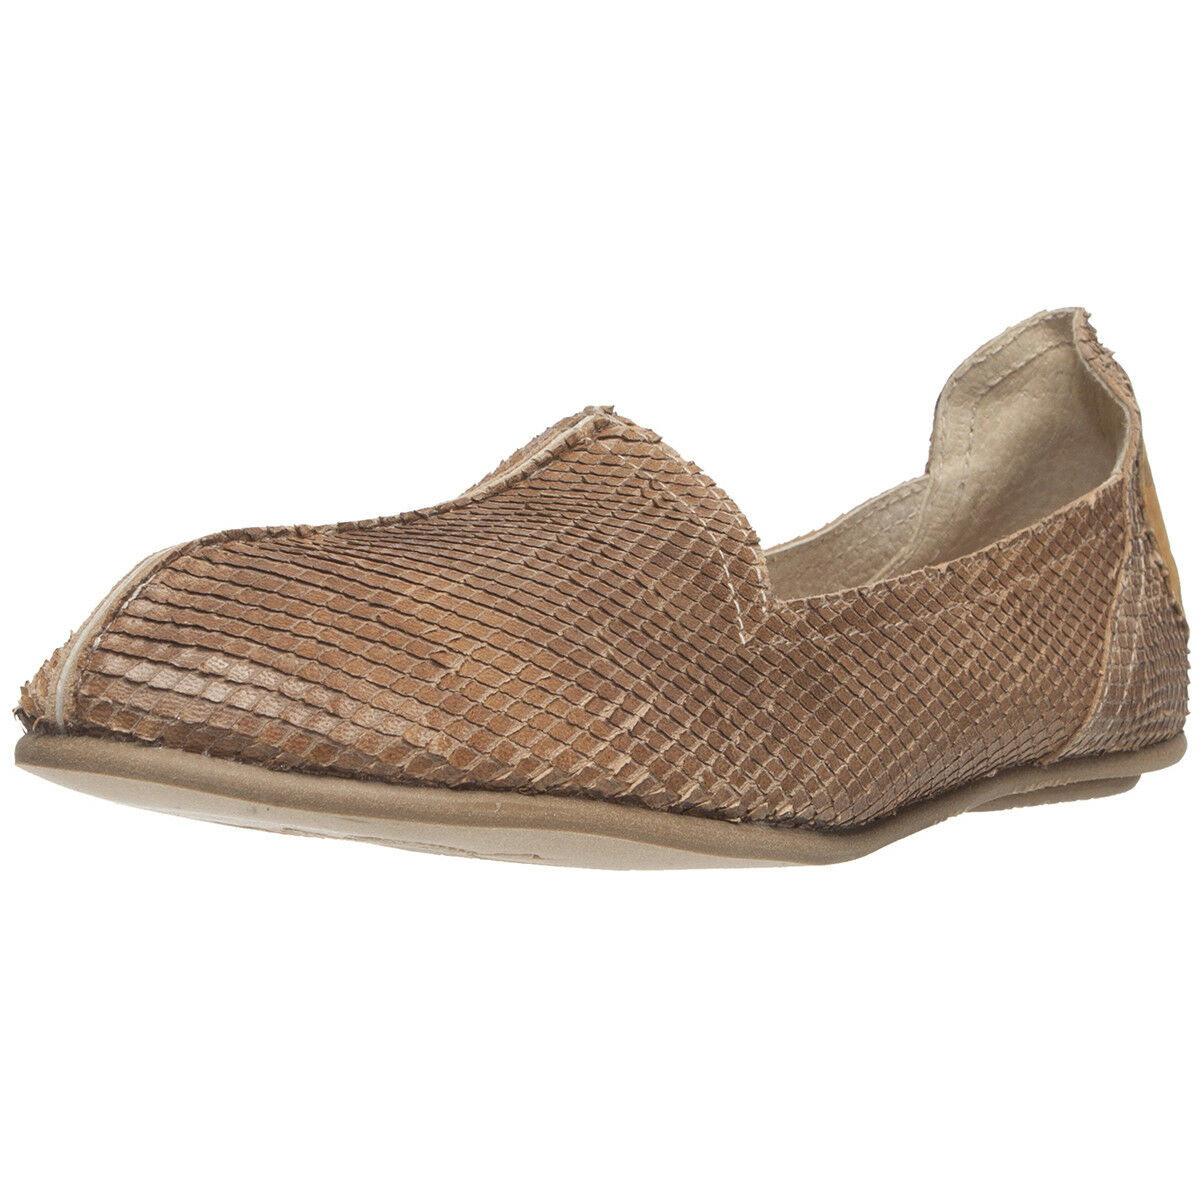 Mayan Roots Women's Beige Reptile Skin Print Leather Flat shoes